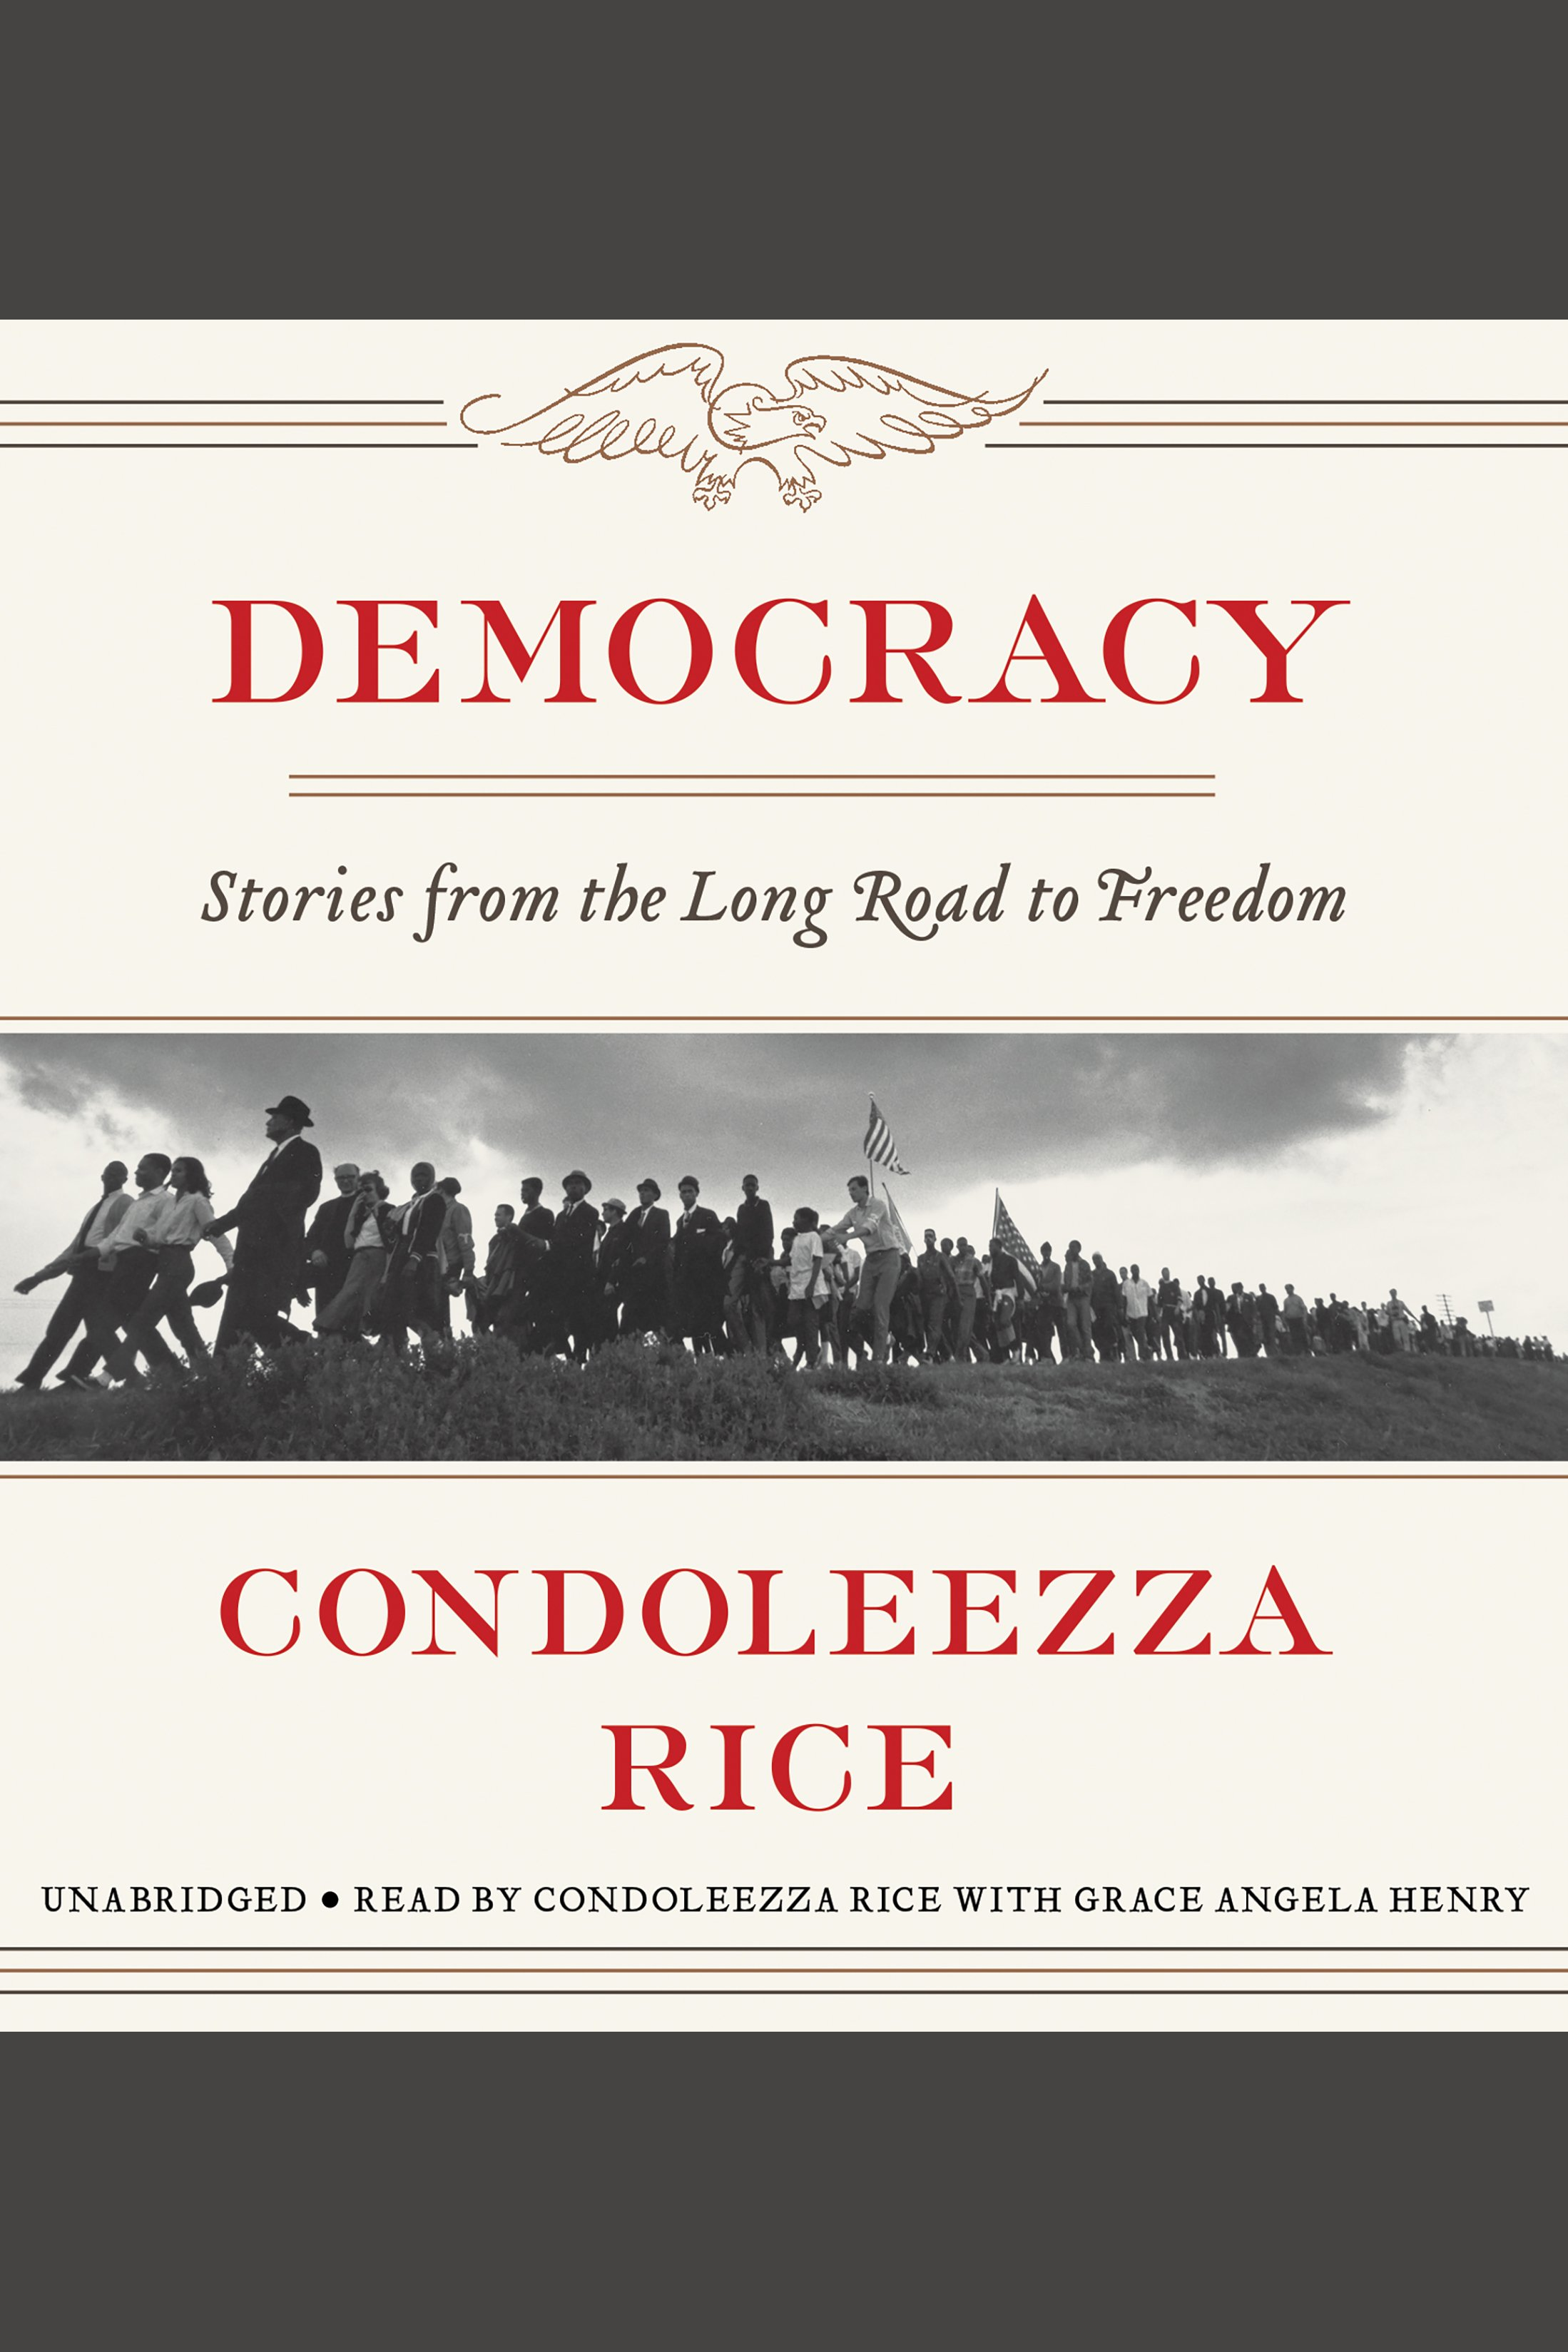 Democracy [AUDIO EBOOK] Stories from the Long Road to Freedom